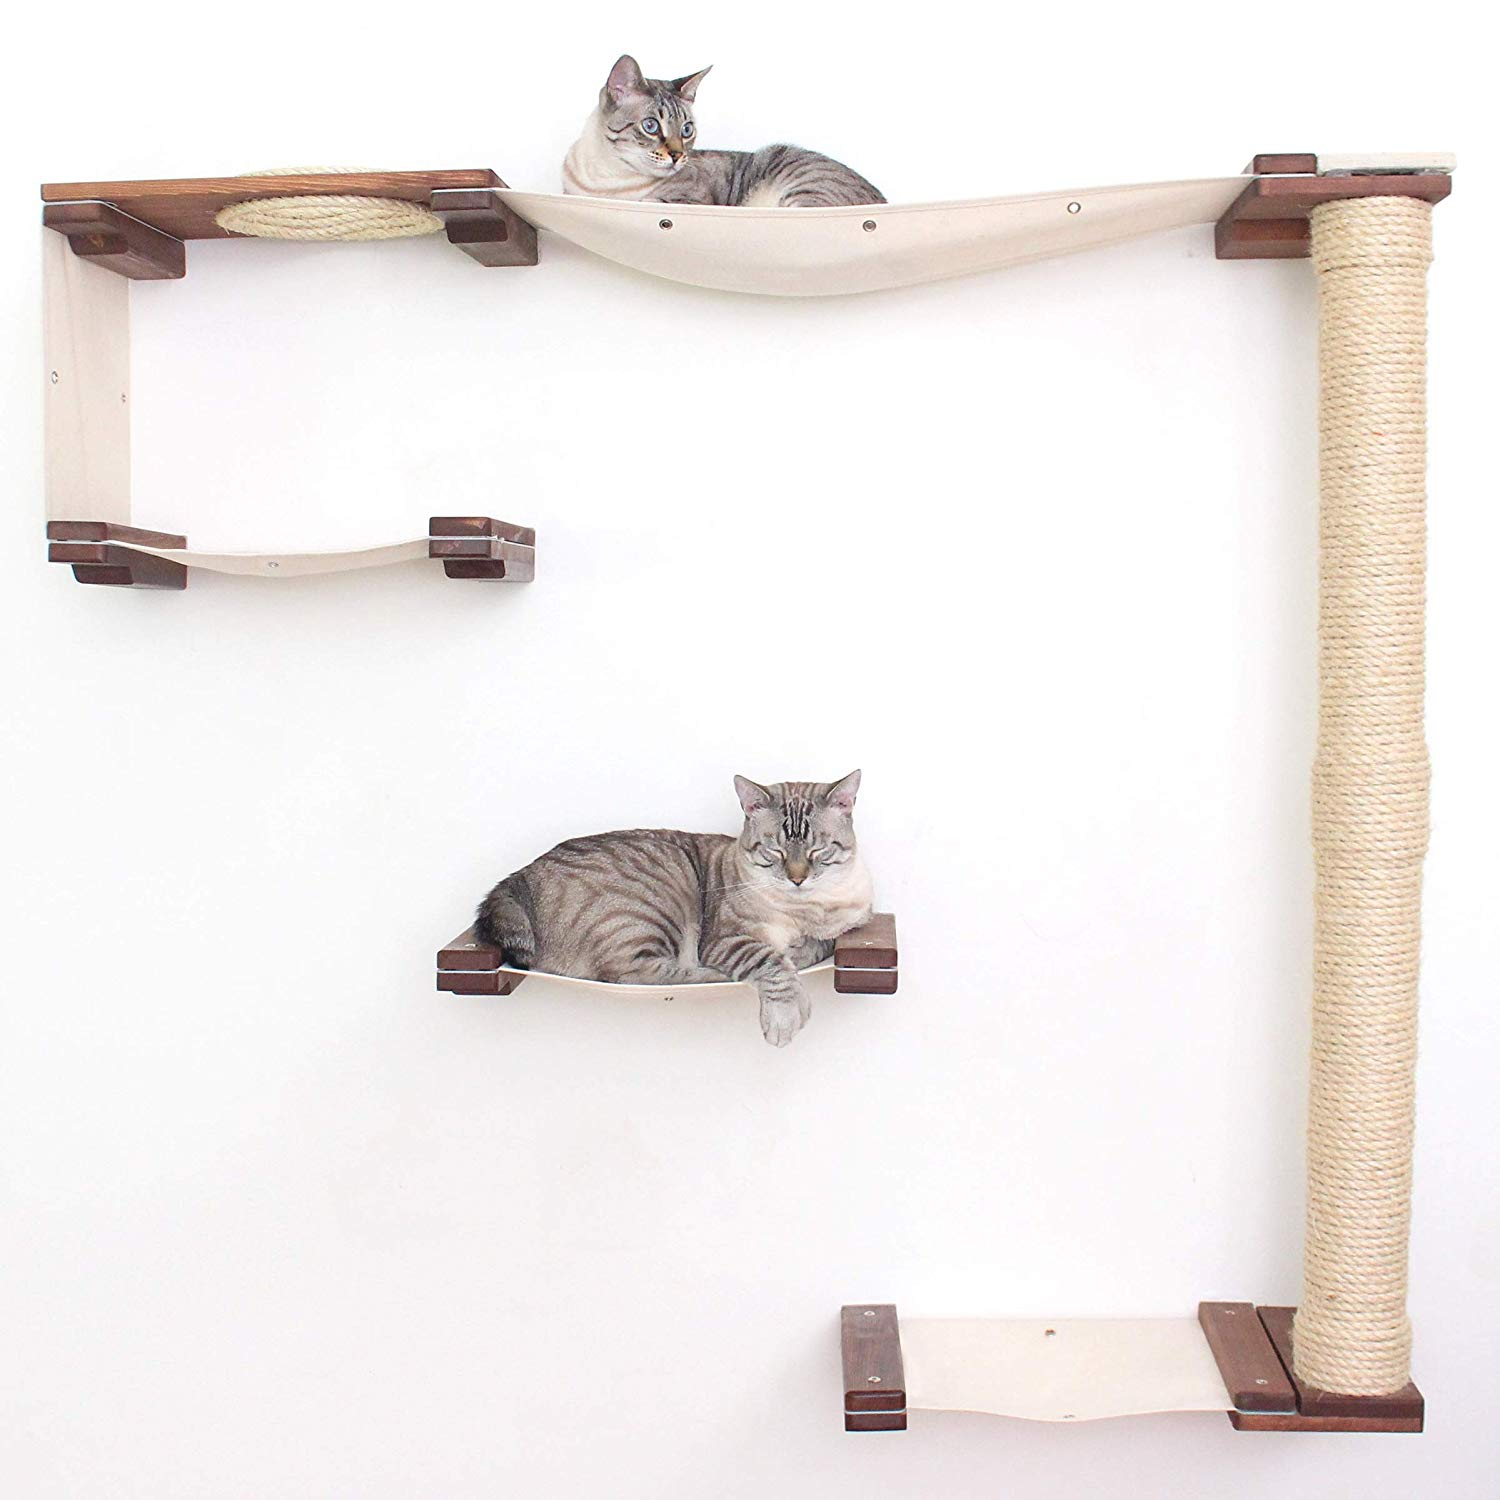 CatastrophiCreations Cat Mod Climb Track Handcrafted Wall Mounted Cat Tree review